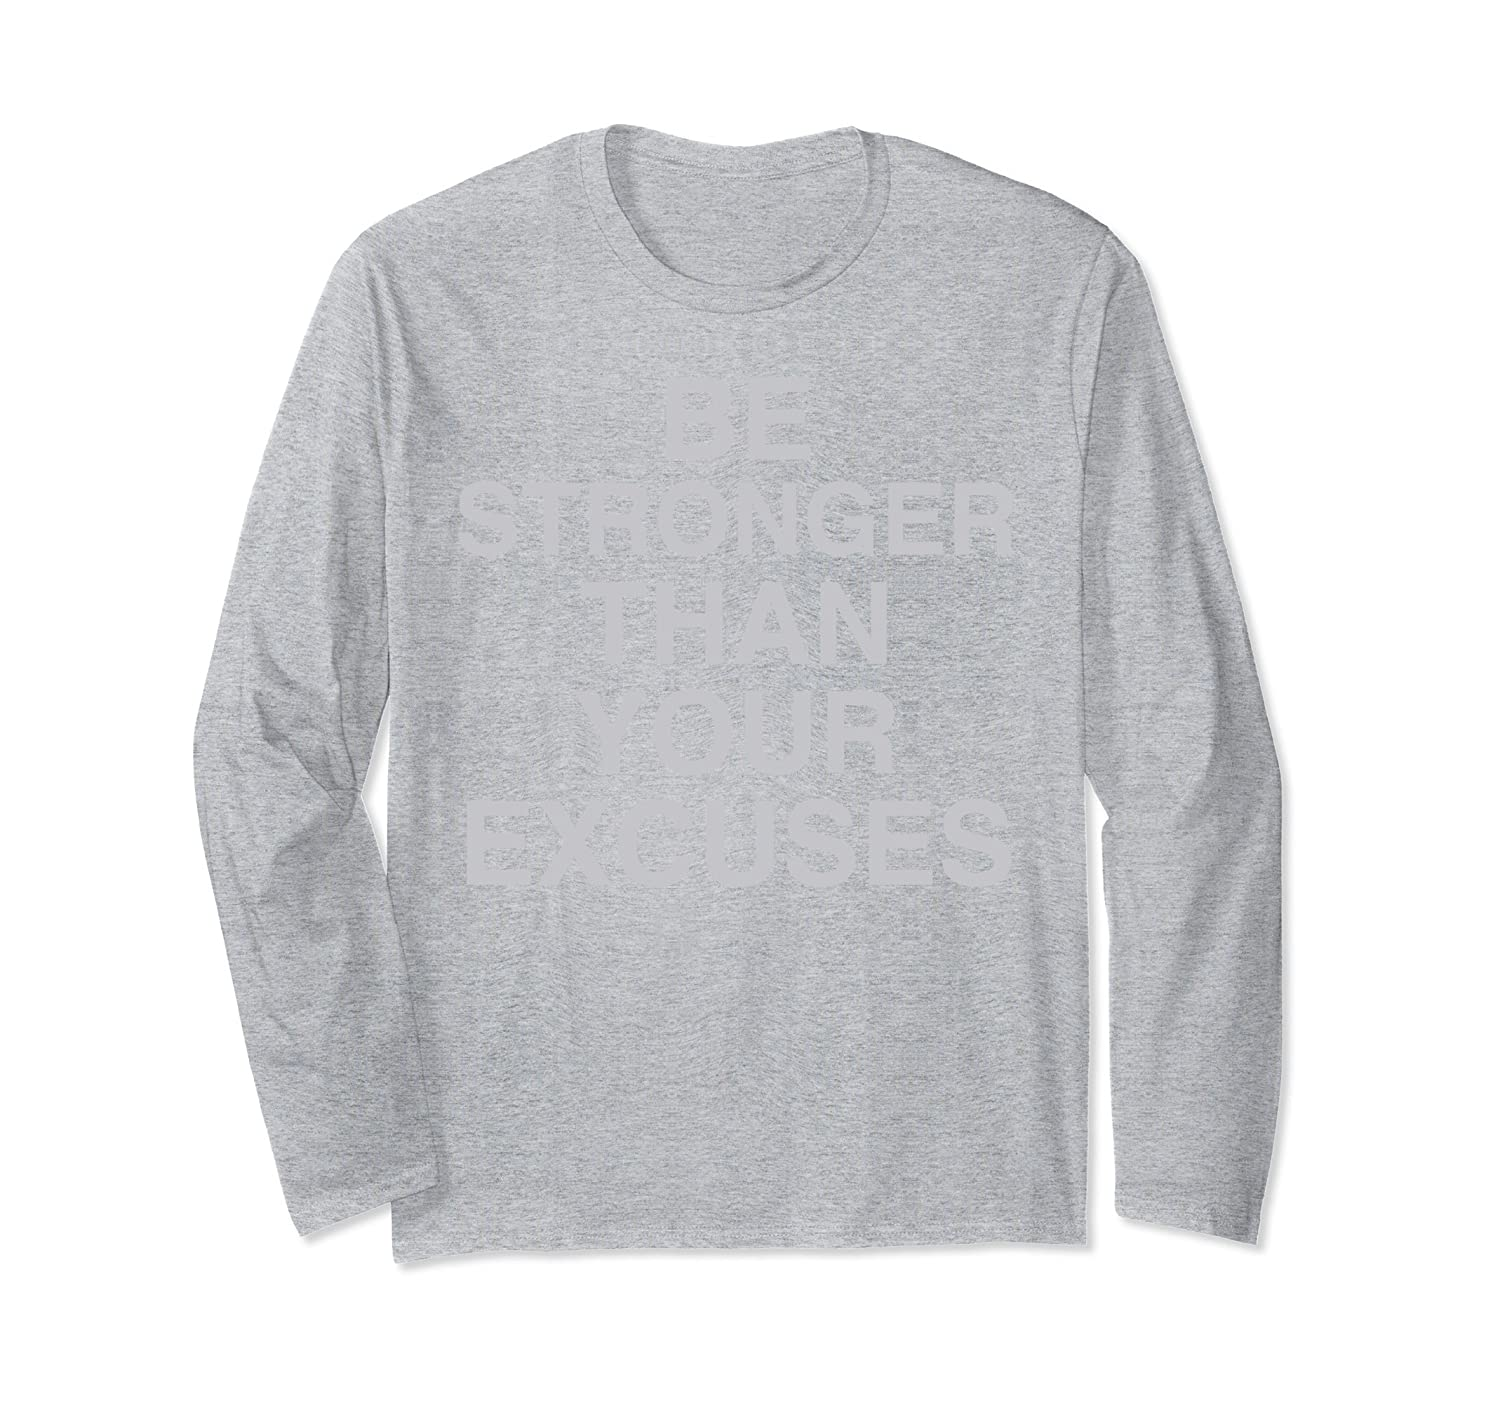 Be Stronger Than Your Excuses Sweat Activated Long Sleeve-alottee gift